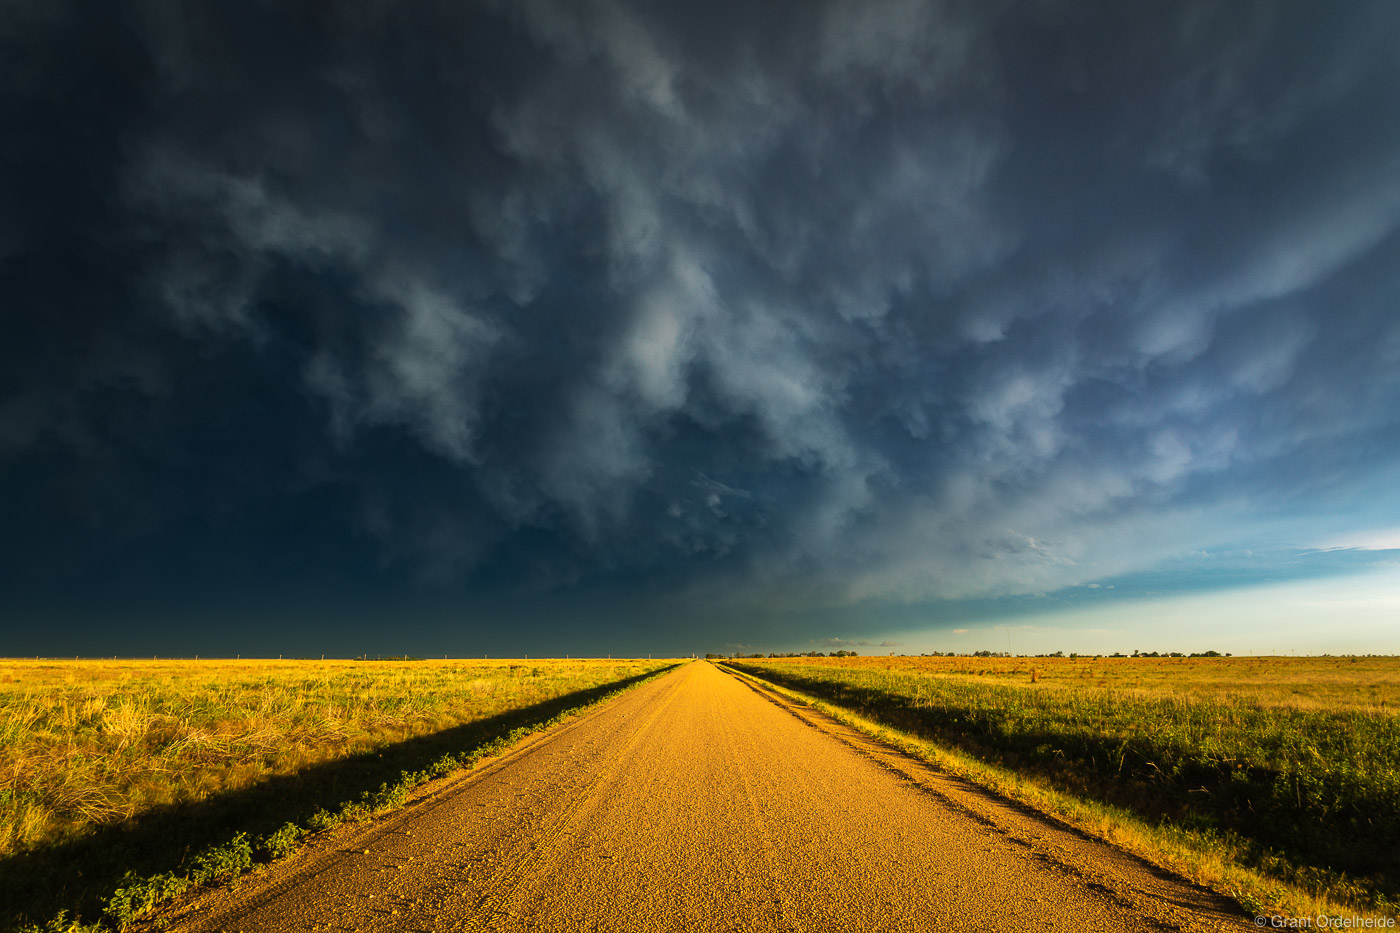 A thunderstorm at sunset over rural dirt road in Kansas.